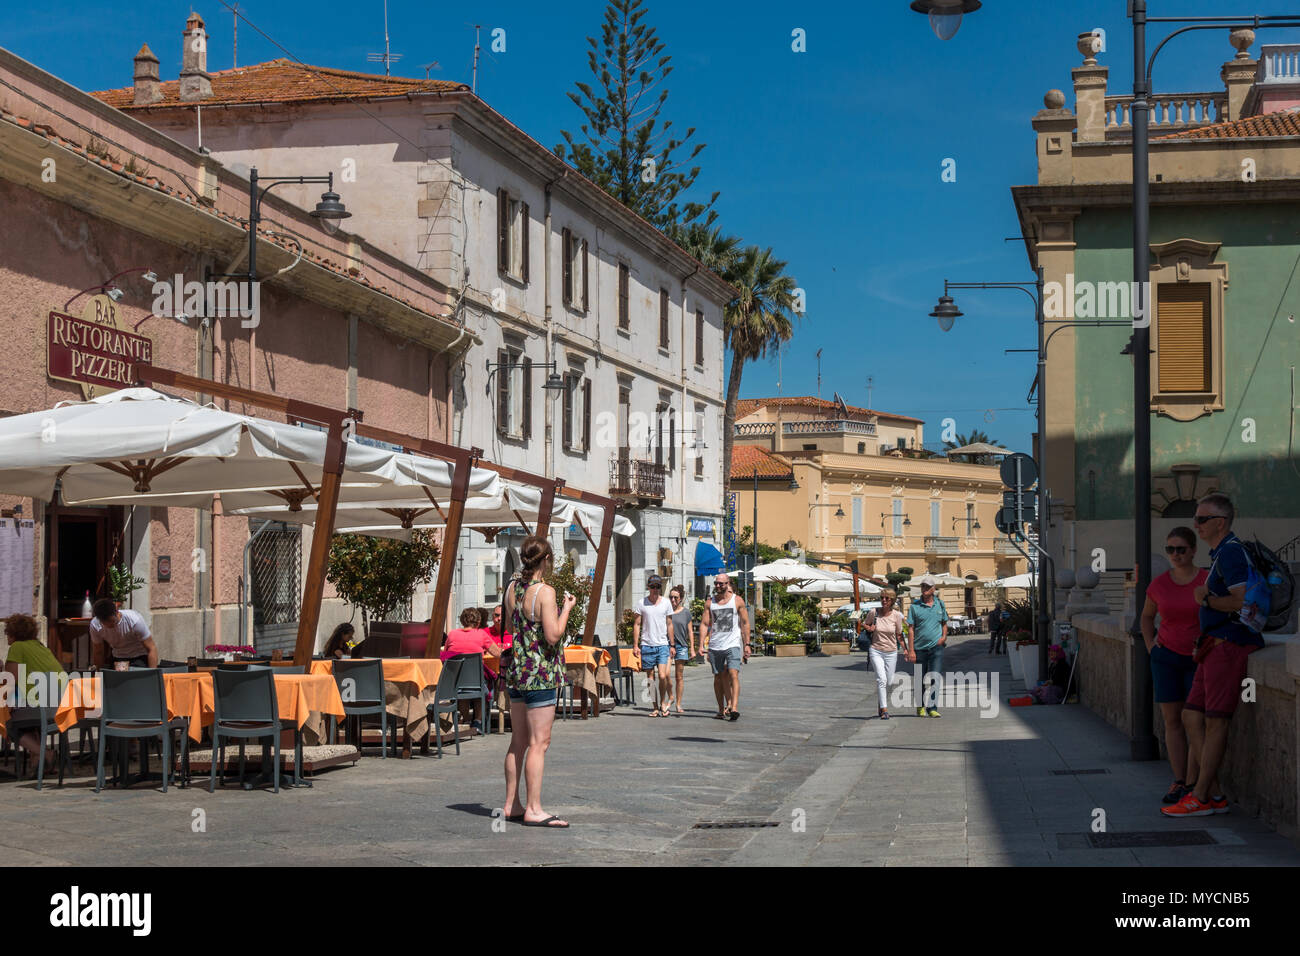 Main tourist street of Olbia old town with cafes and restaurants, Sardinia - Stock Image